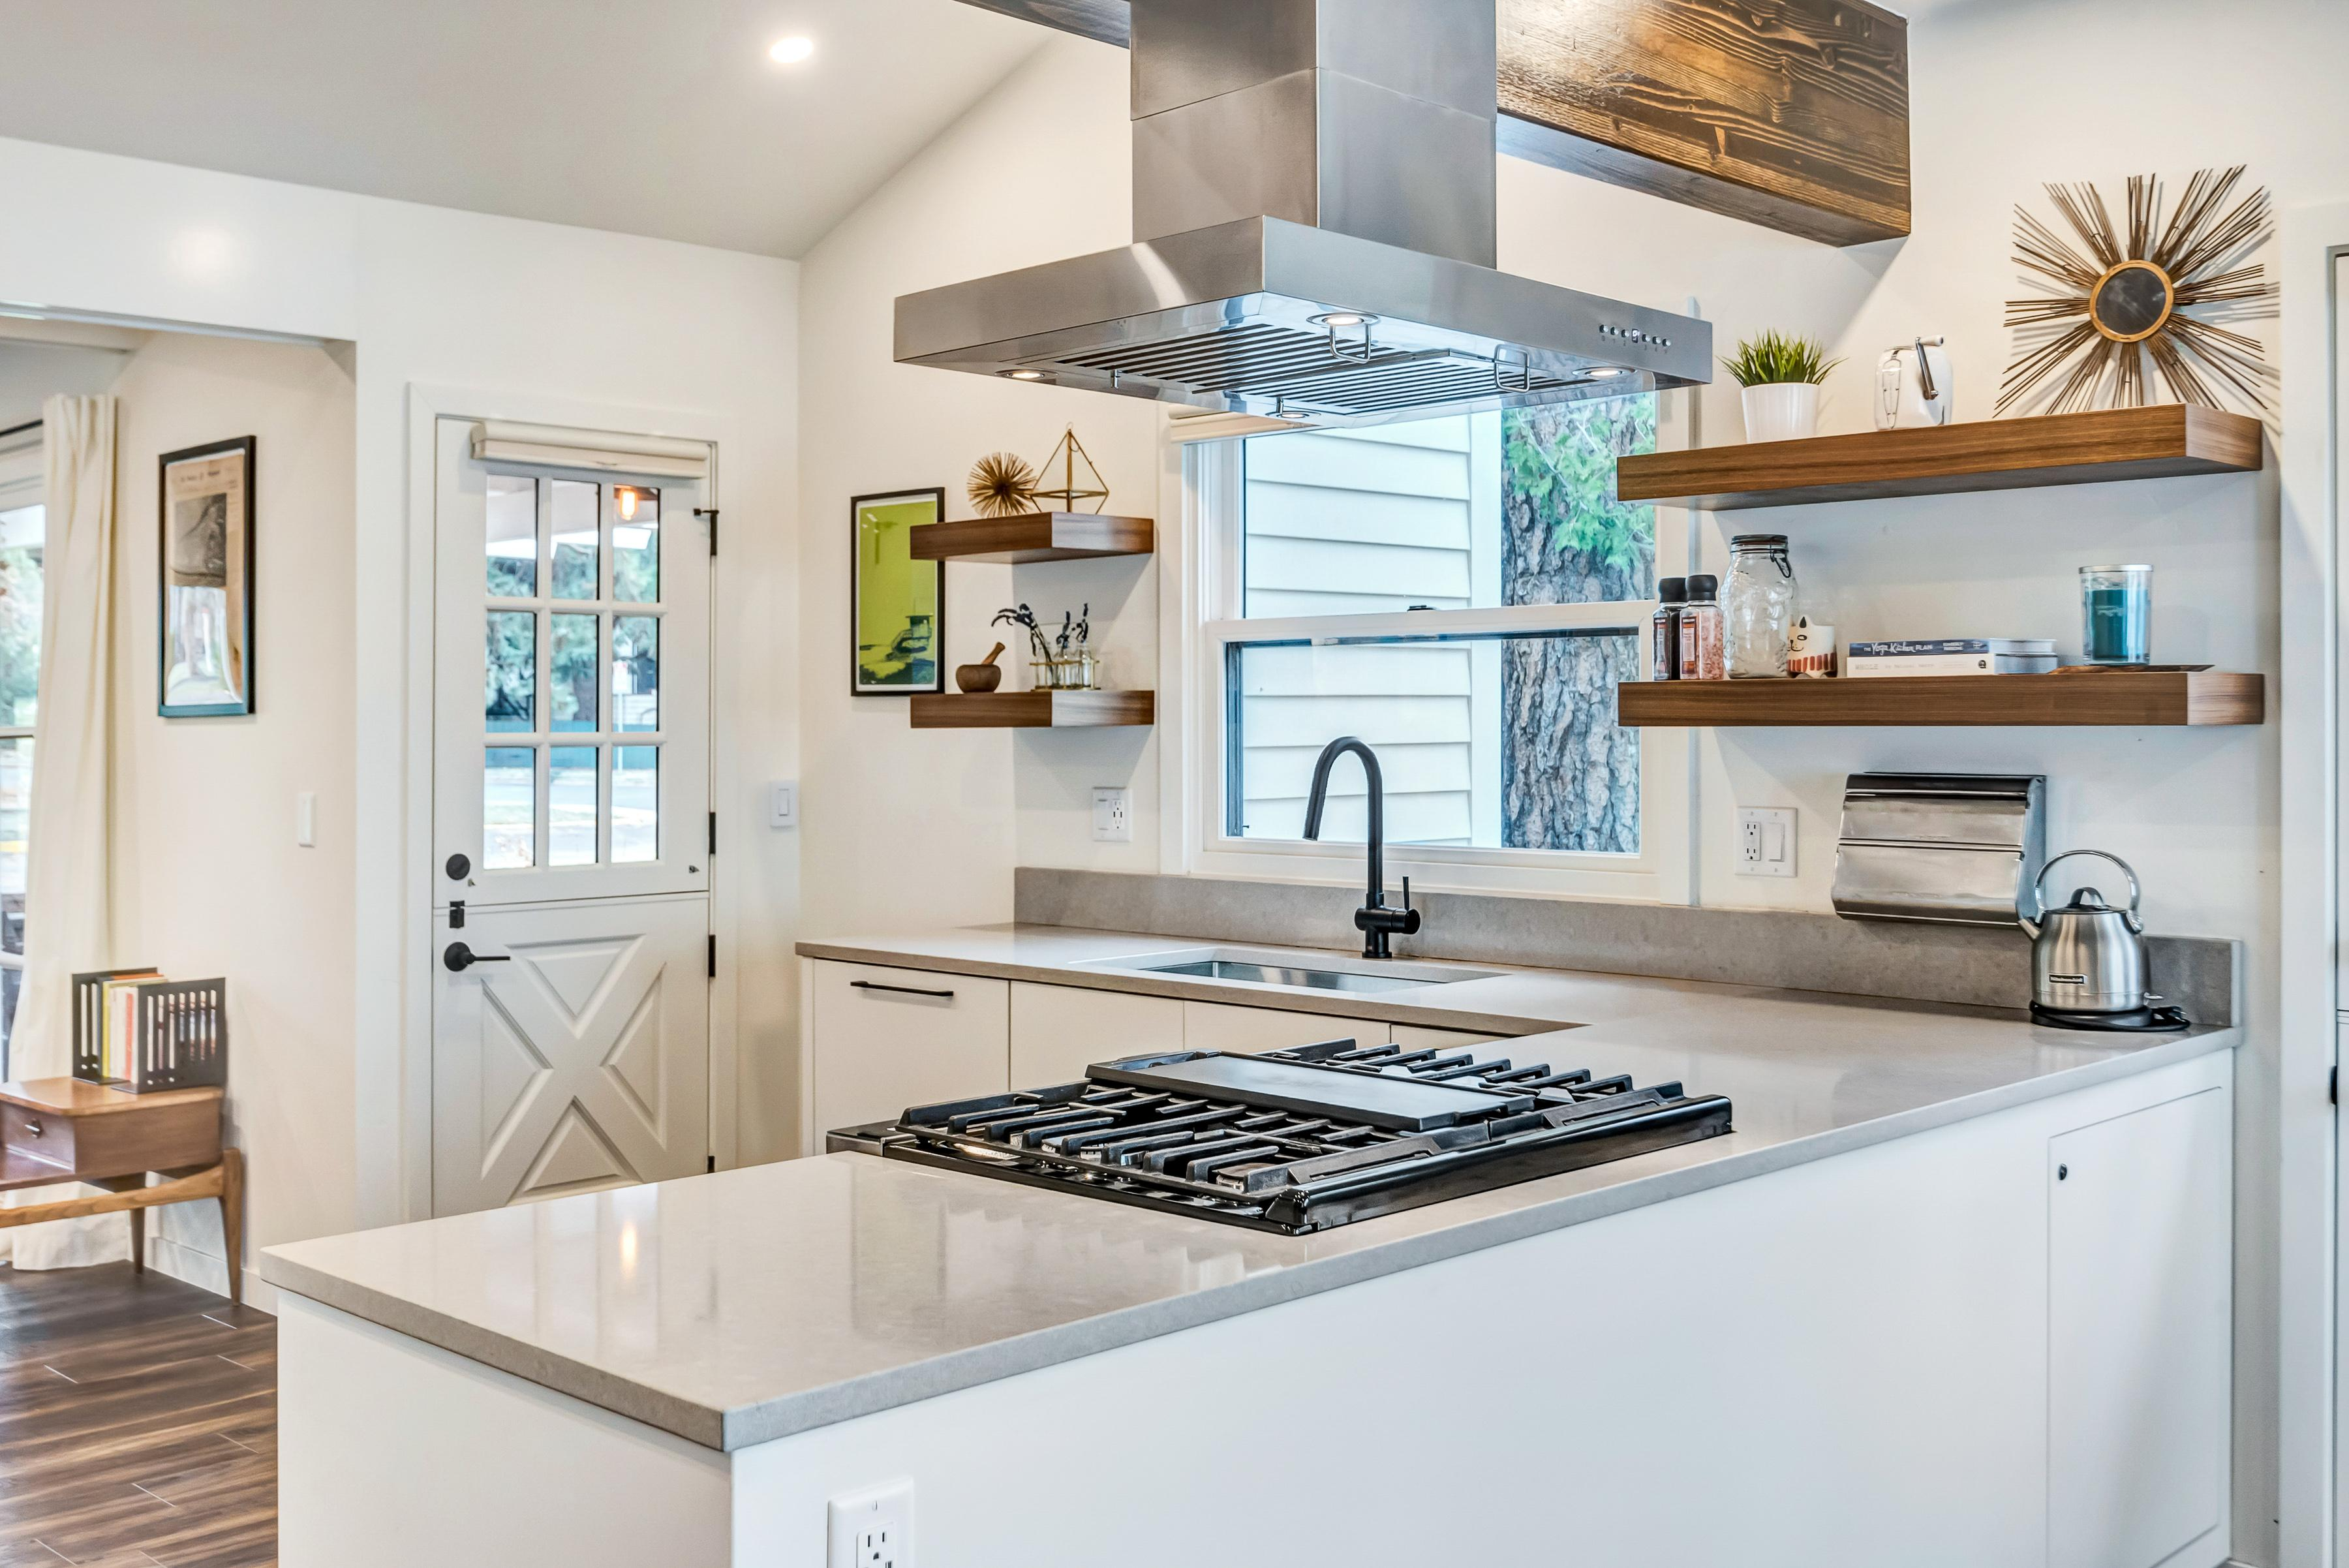 The sleek kitchen is outfitted with quality stainless steel appliances and granite countertops.